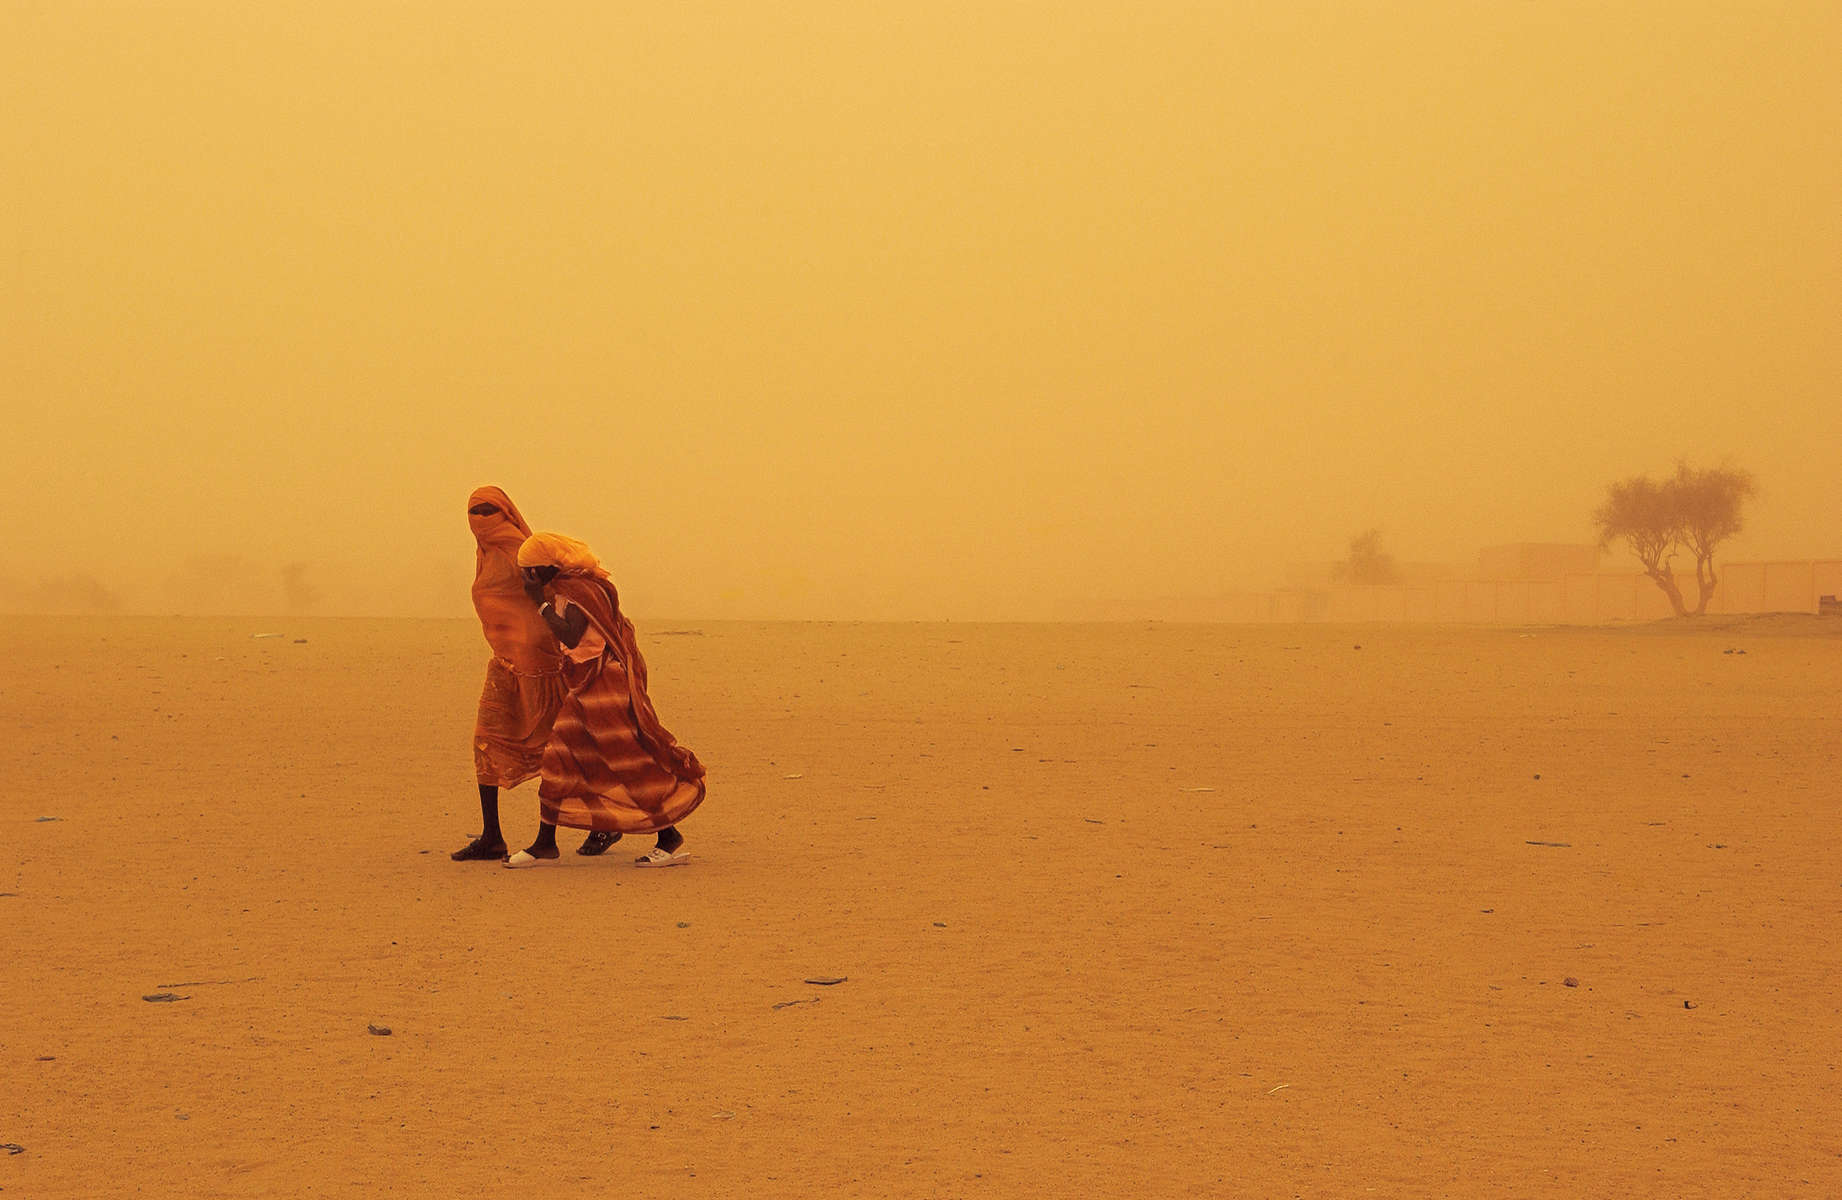 Two women walk though a sandstorm in Bahai, Chad, along the border with Darfur, Sudan, August 2004.